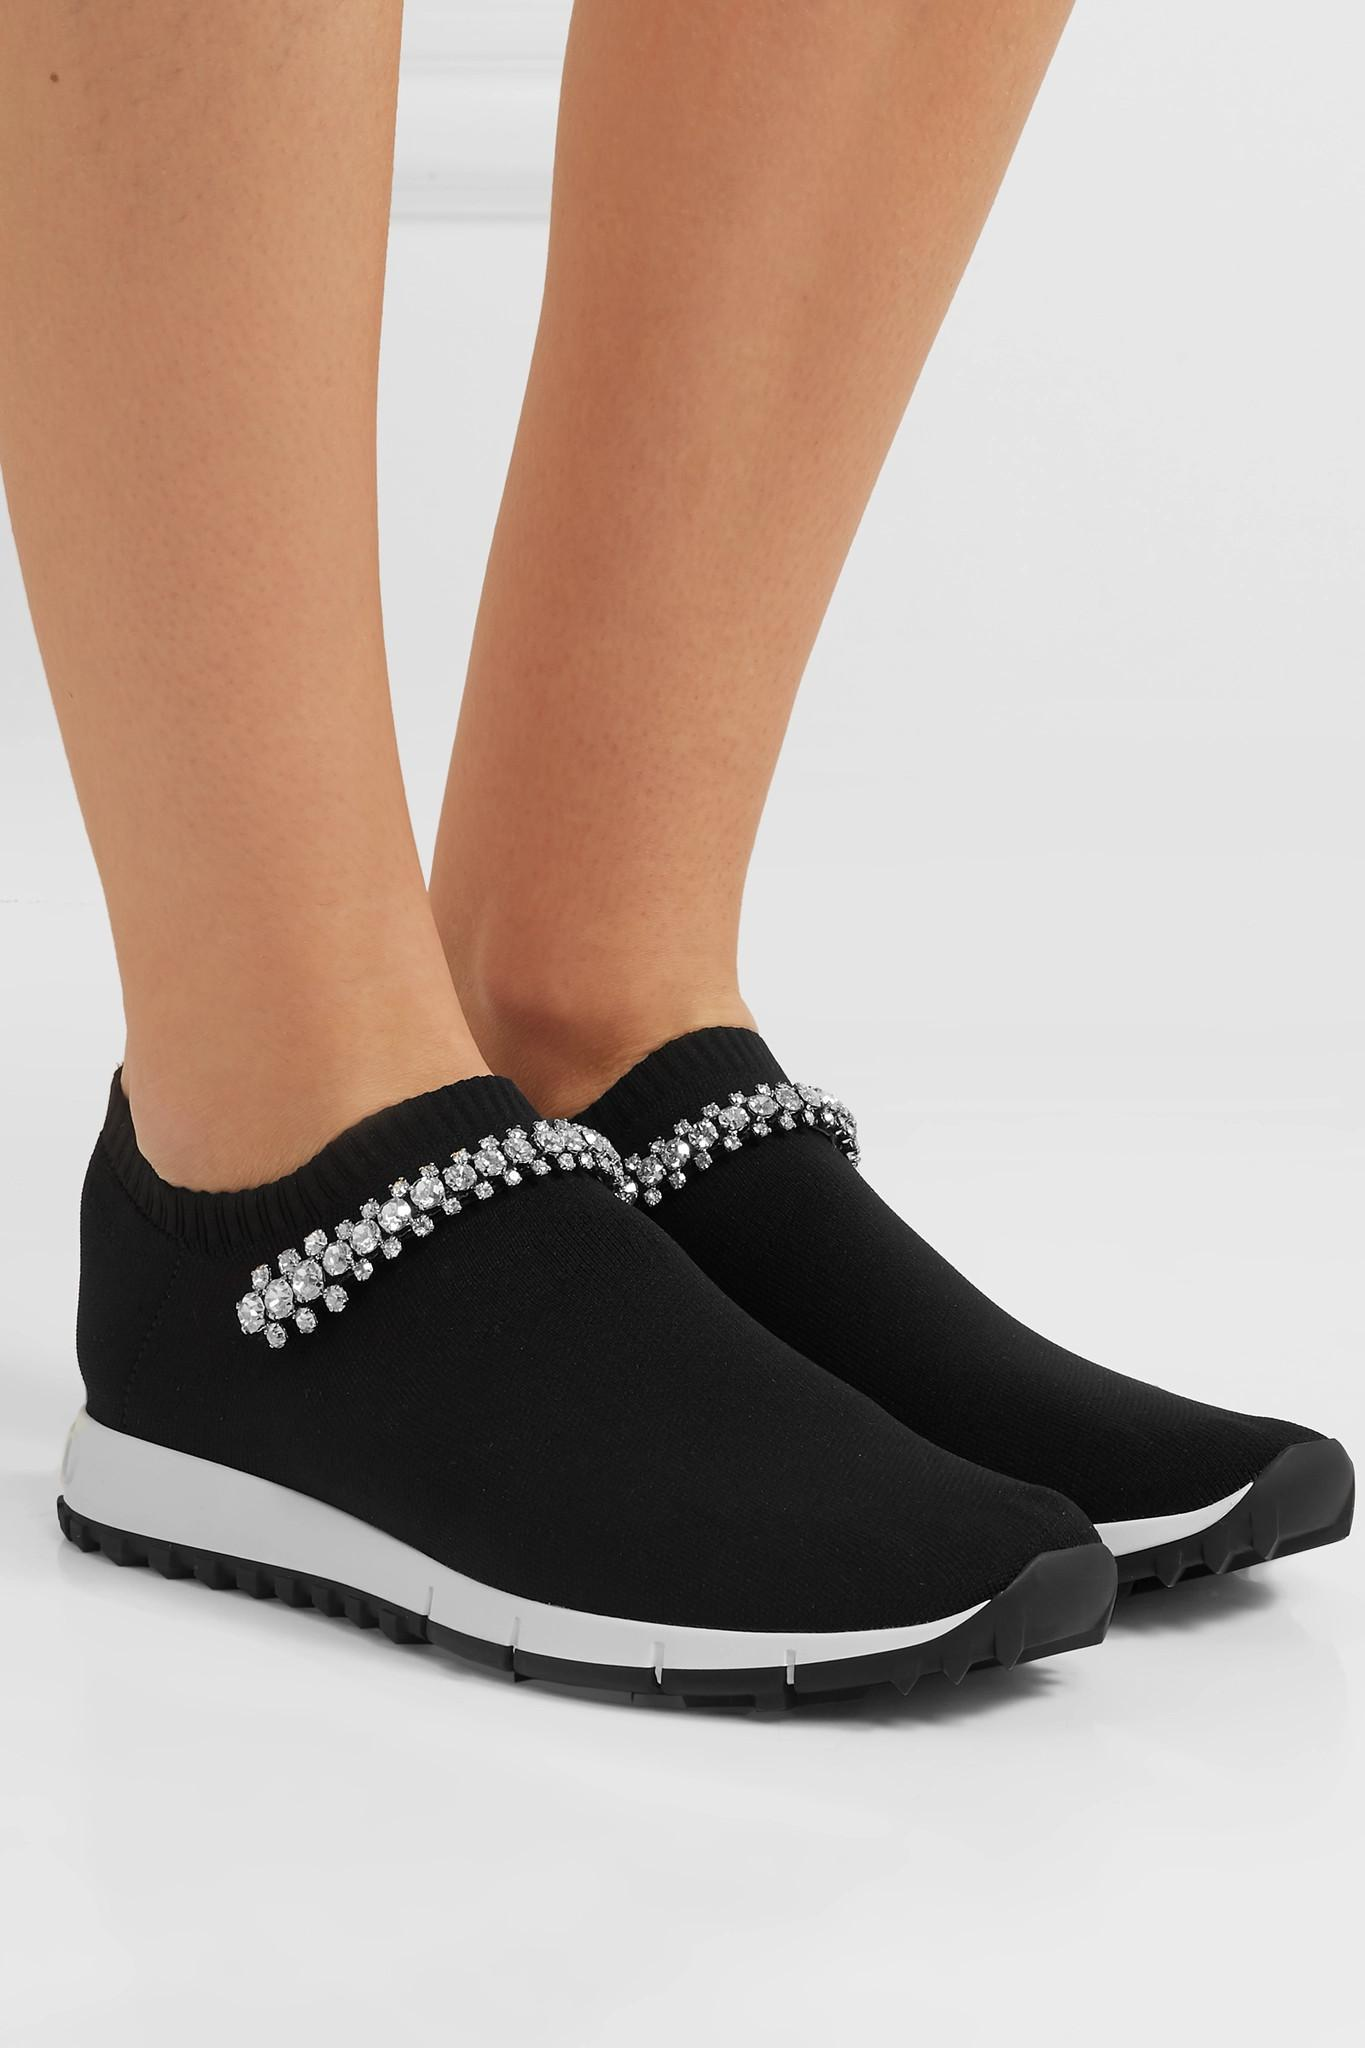 ce81a5905f64 Jimmy Choo - Black Verona Crystal-embellished Stretch-knit Sneakers - Lyst.  View fullscreen